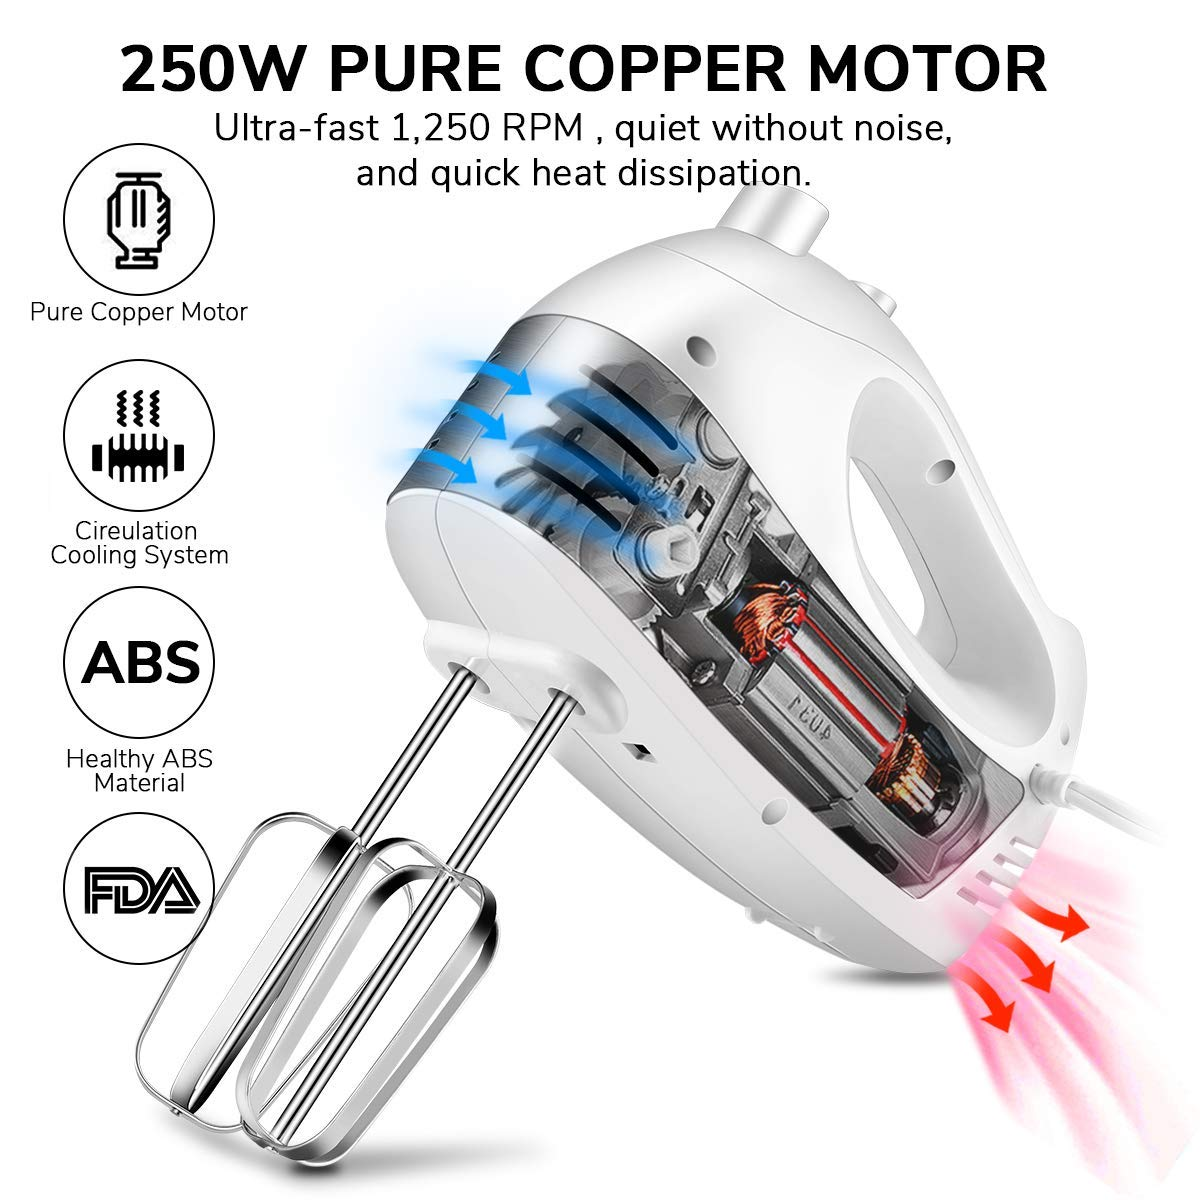 Hand Mixer with 5-Speed 250W Power Advantage Electric Handheld Mixer with Turbo and Easy Eject Button, Includes Storage Case Beaters Dough Hooks and Balloon Whisk, by KEEMO-White by KEEMO (Image #3)